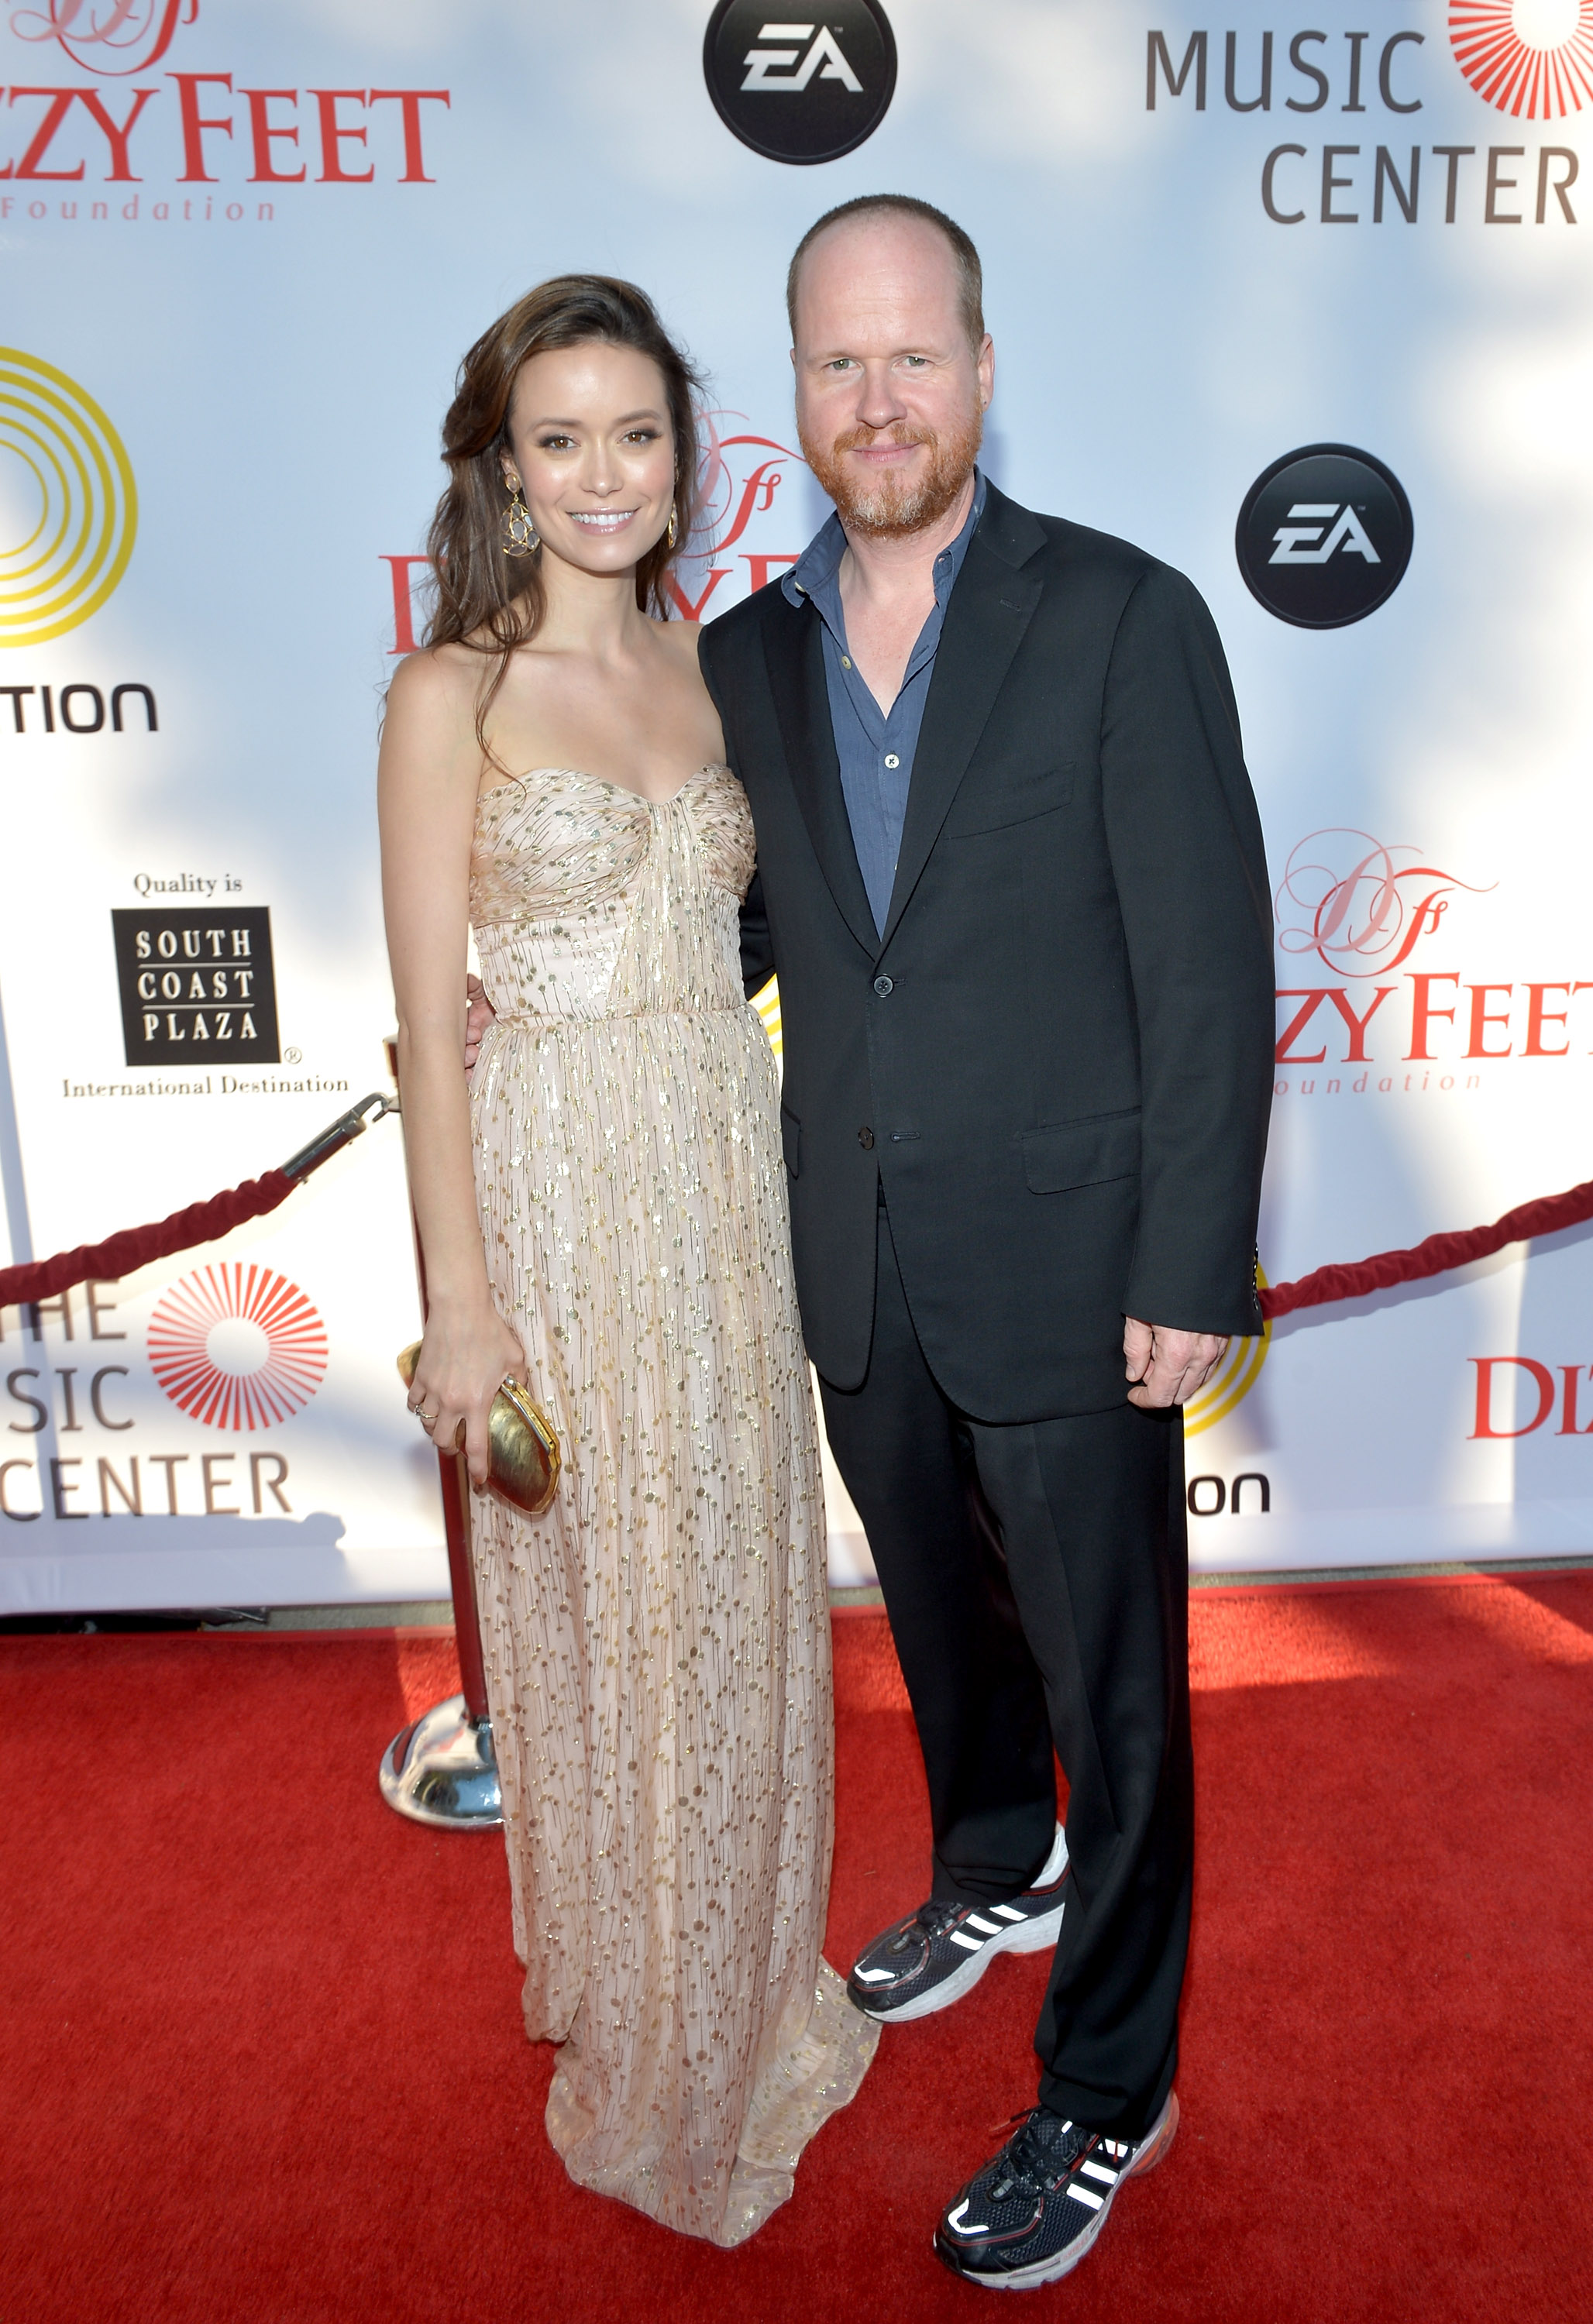 Summer Glau 2012 : summer-glau-dizzy-feet-foundation-celebration-of-dance-gala-2012-in-la-06